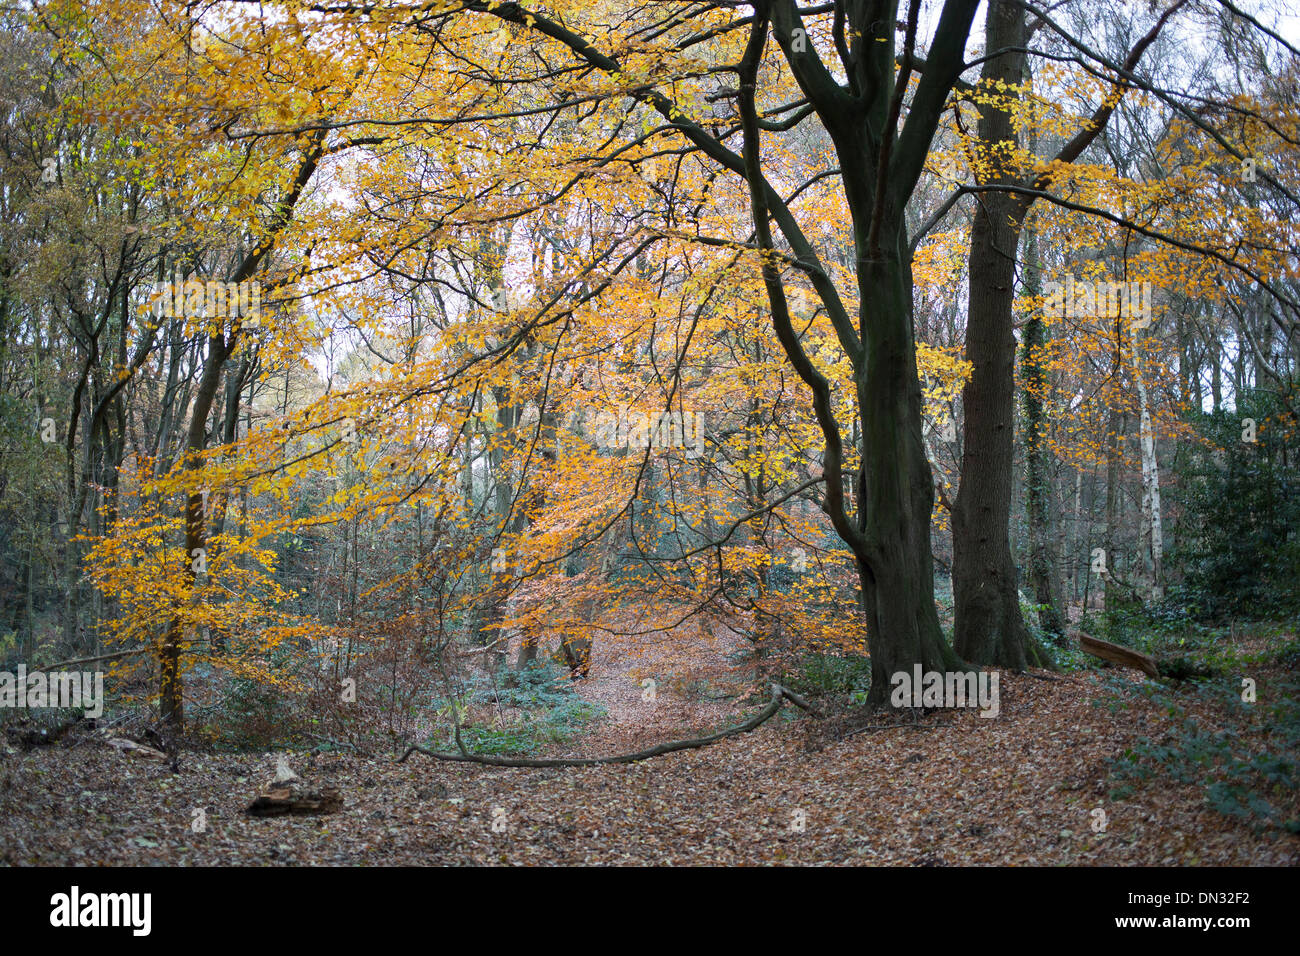 Sandy Heath, ancient woodland and part of Hampstead Heath (locally known as 'the Heath') is a large, ancient London park. UK - Stock Image